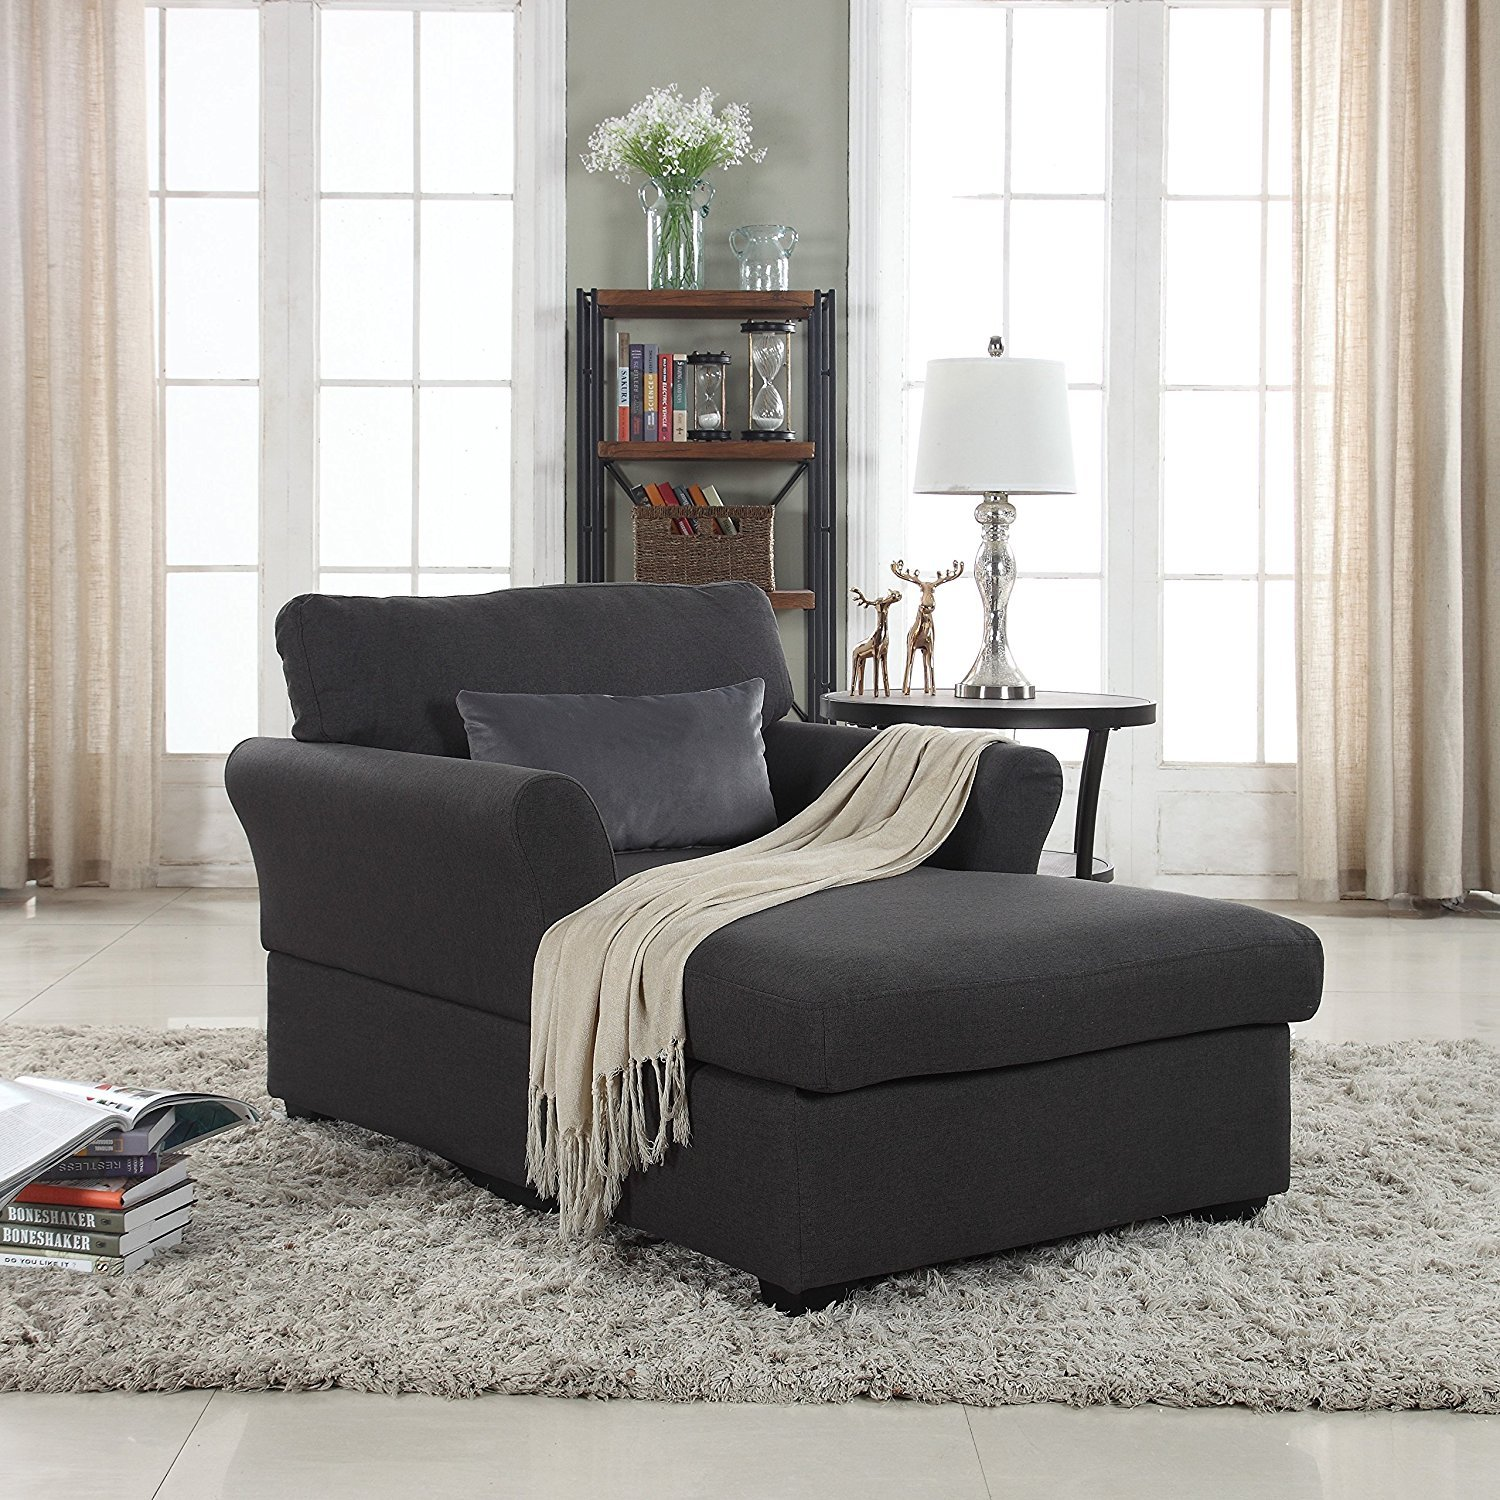 Details About Large Linen Fabric Living Room Bedroom Chaise Lounge Lounger Dark Grey